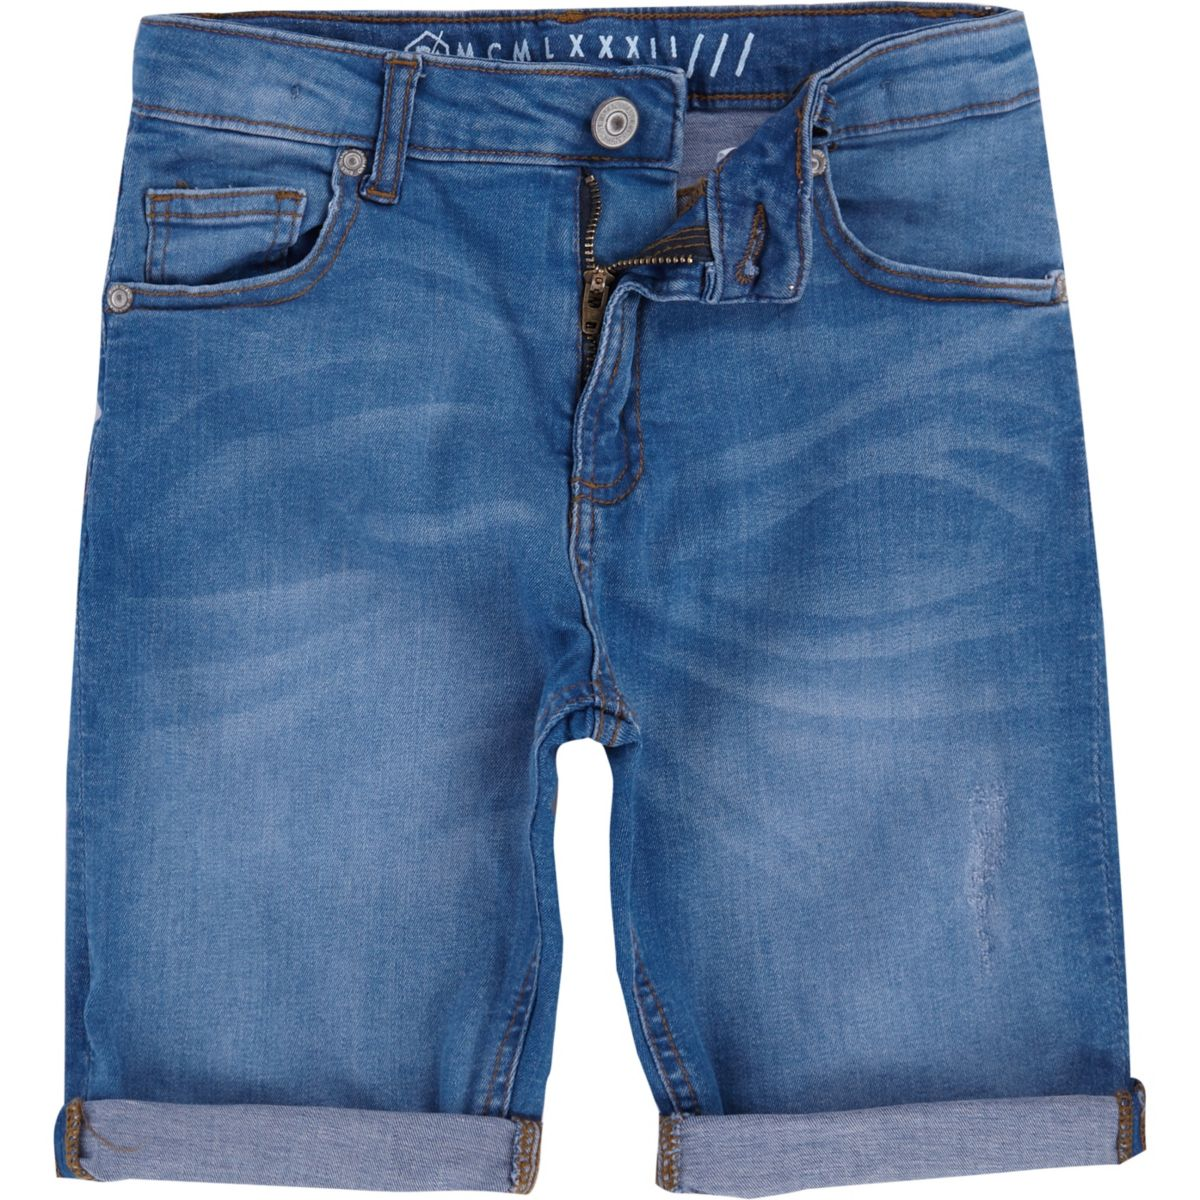 Shop Jeans for Boys Online, from the Fall - Winter /19 Collection or on Sale from the Outlet. Kids Skinny Jeans from Stylish Designers are available.